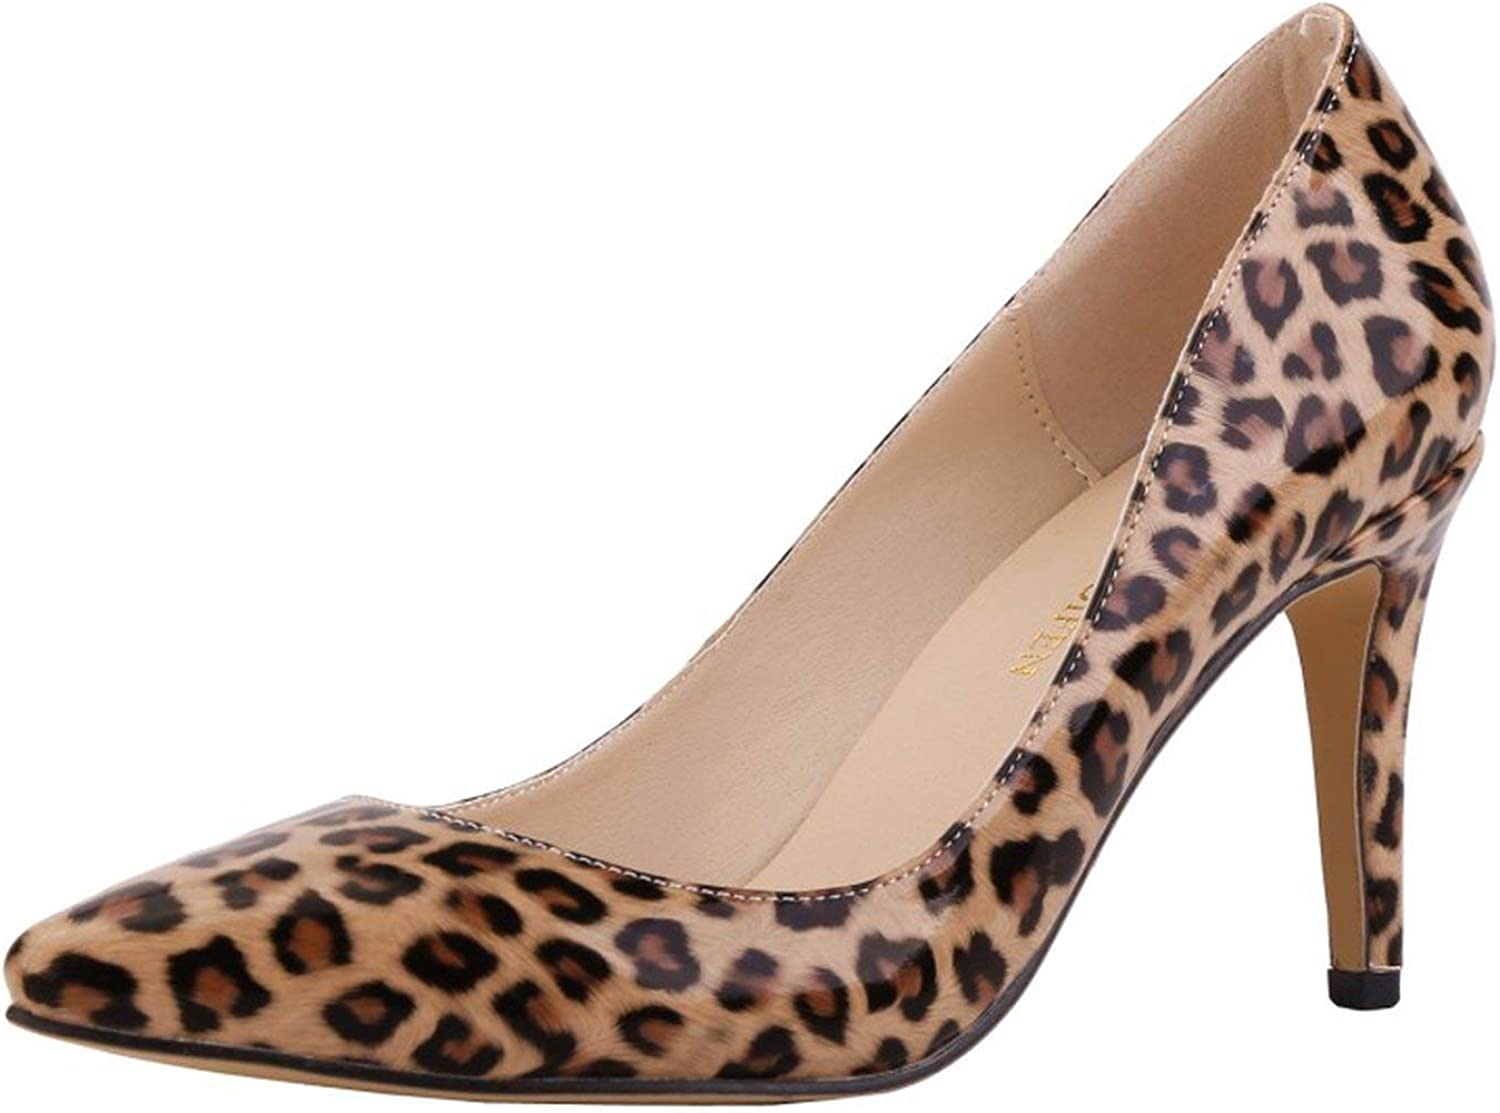 Coolemon Fashion Women Pumps Pointed Toe high Heels shoes Woman Party Wedding pu Leather Ladies Heels shoes Slip on Leopard